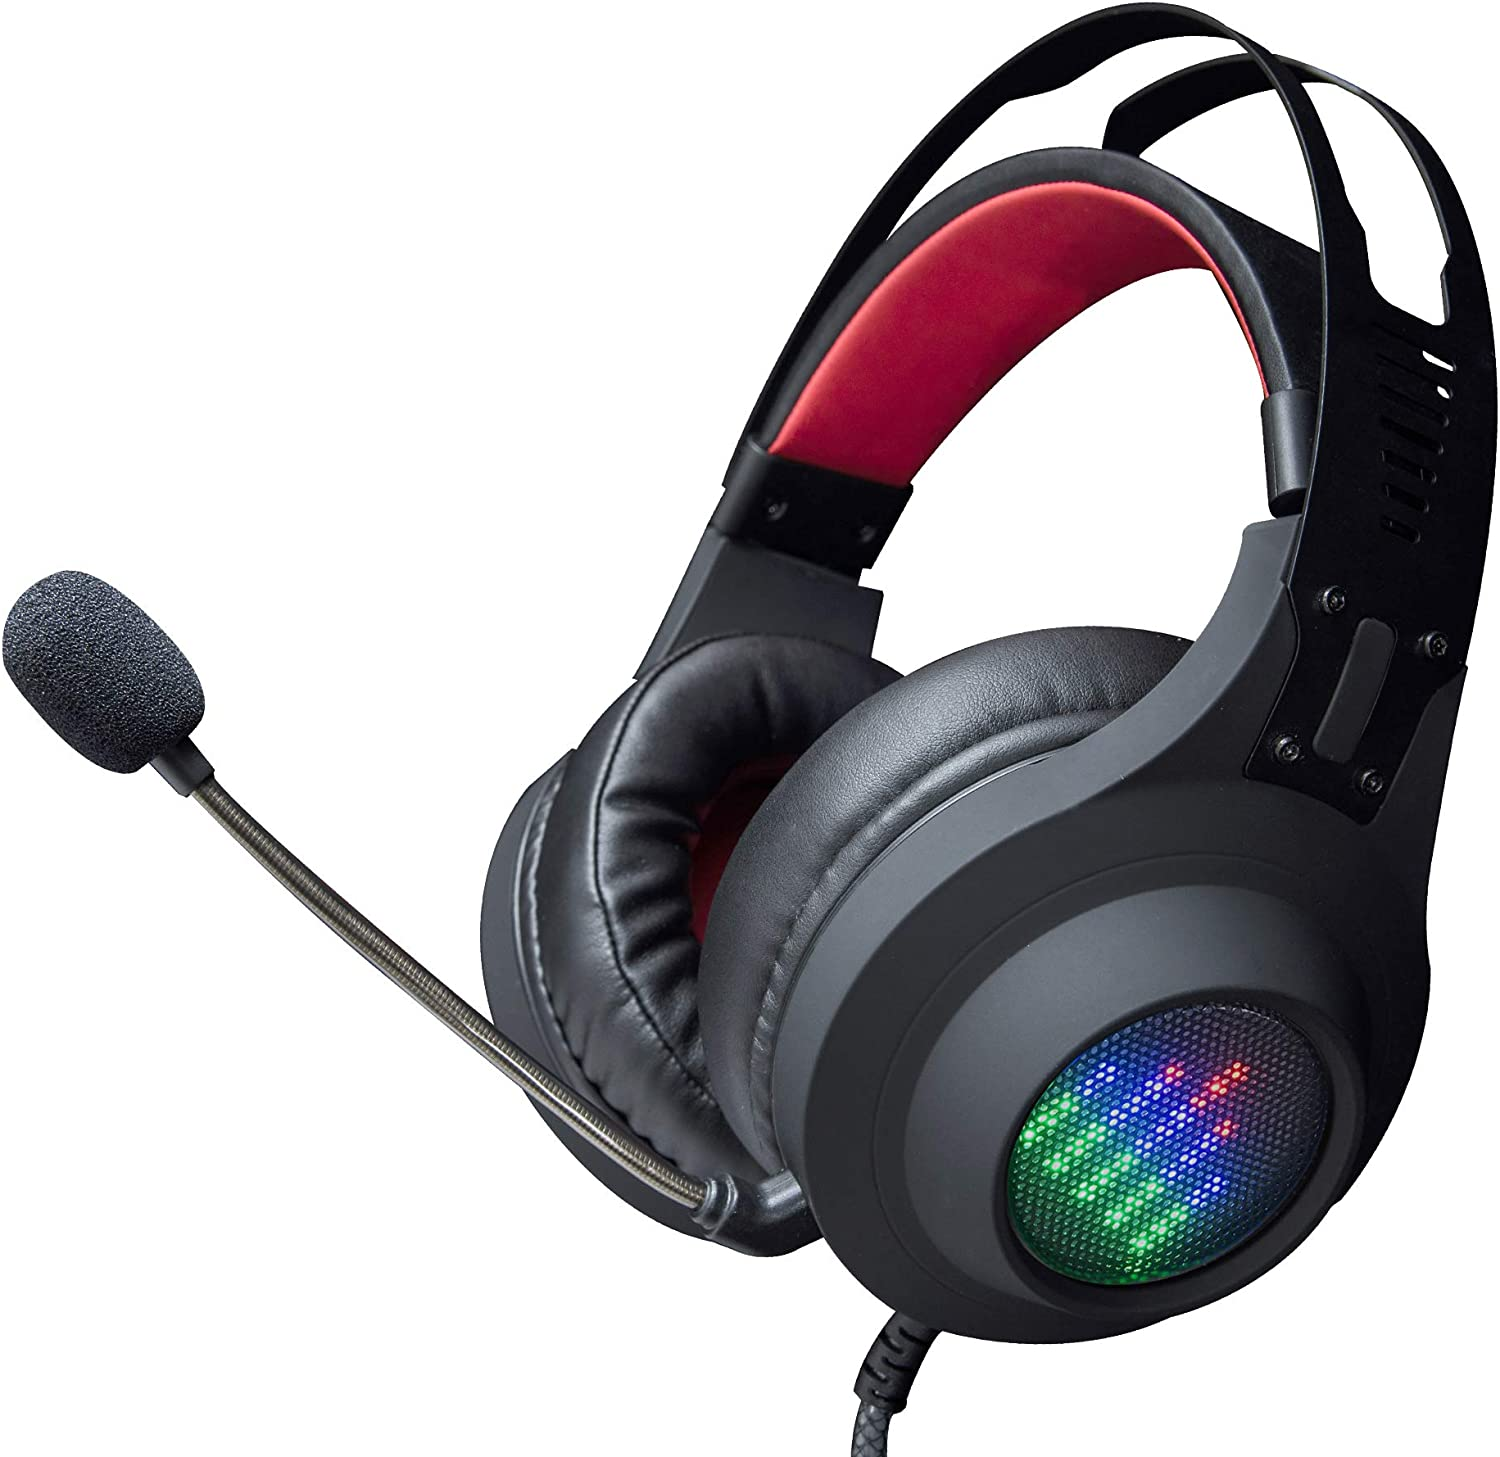 PS4 Gaming Headset, Sauker Gaming Headphone with Virtual 7.1 Surround Sound, USB Computer Headset with Microphone, Easy Volume Control, Dynamic LED Lights for PS4, Mac, PC Win7, Win8, Win10